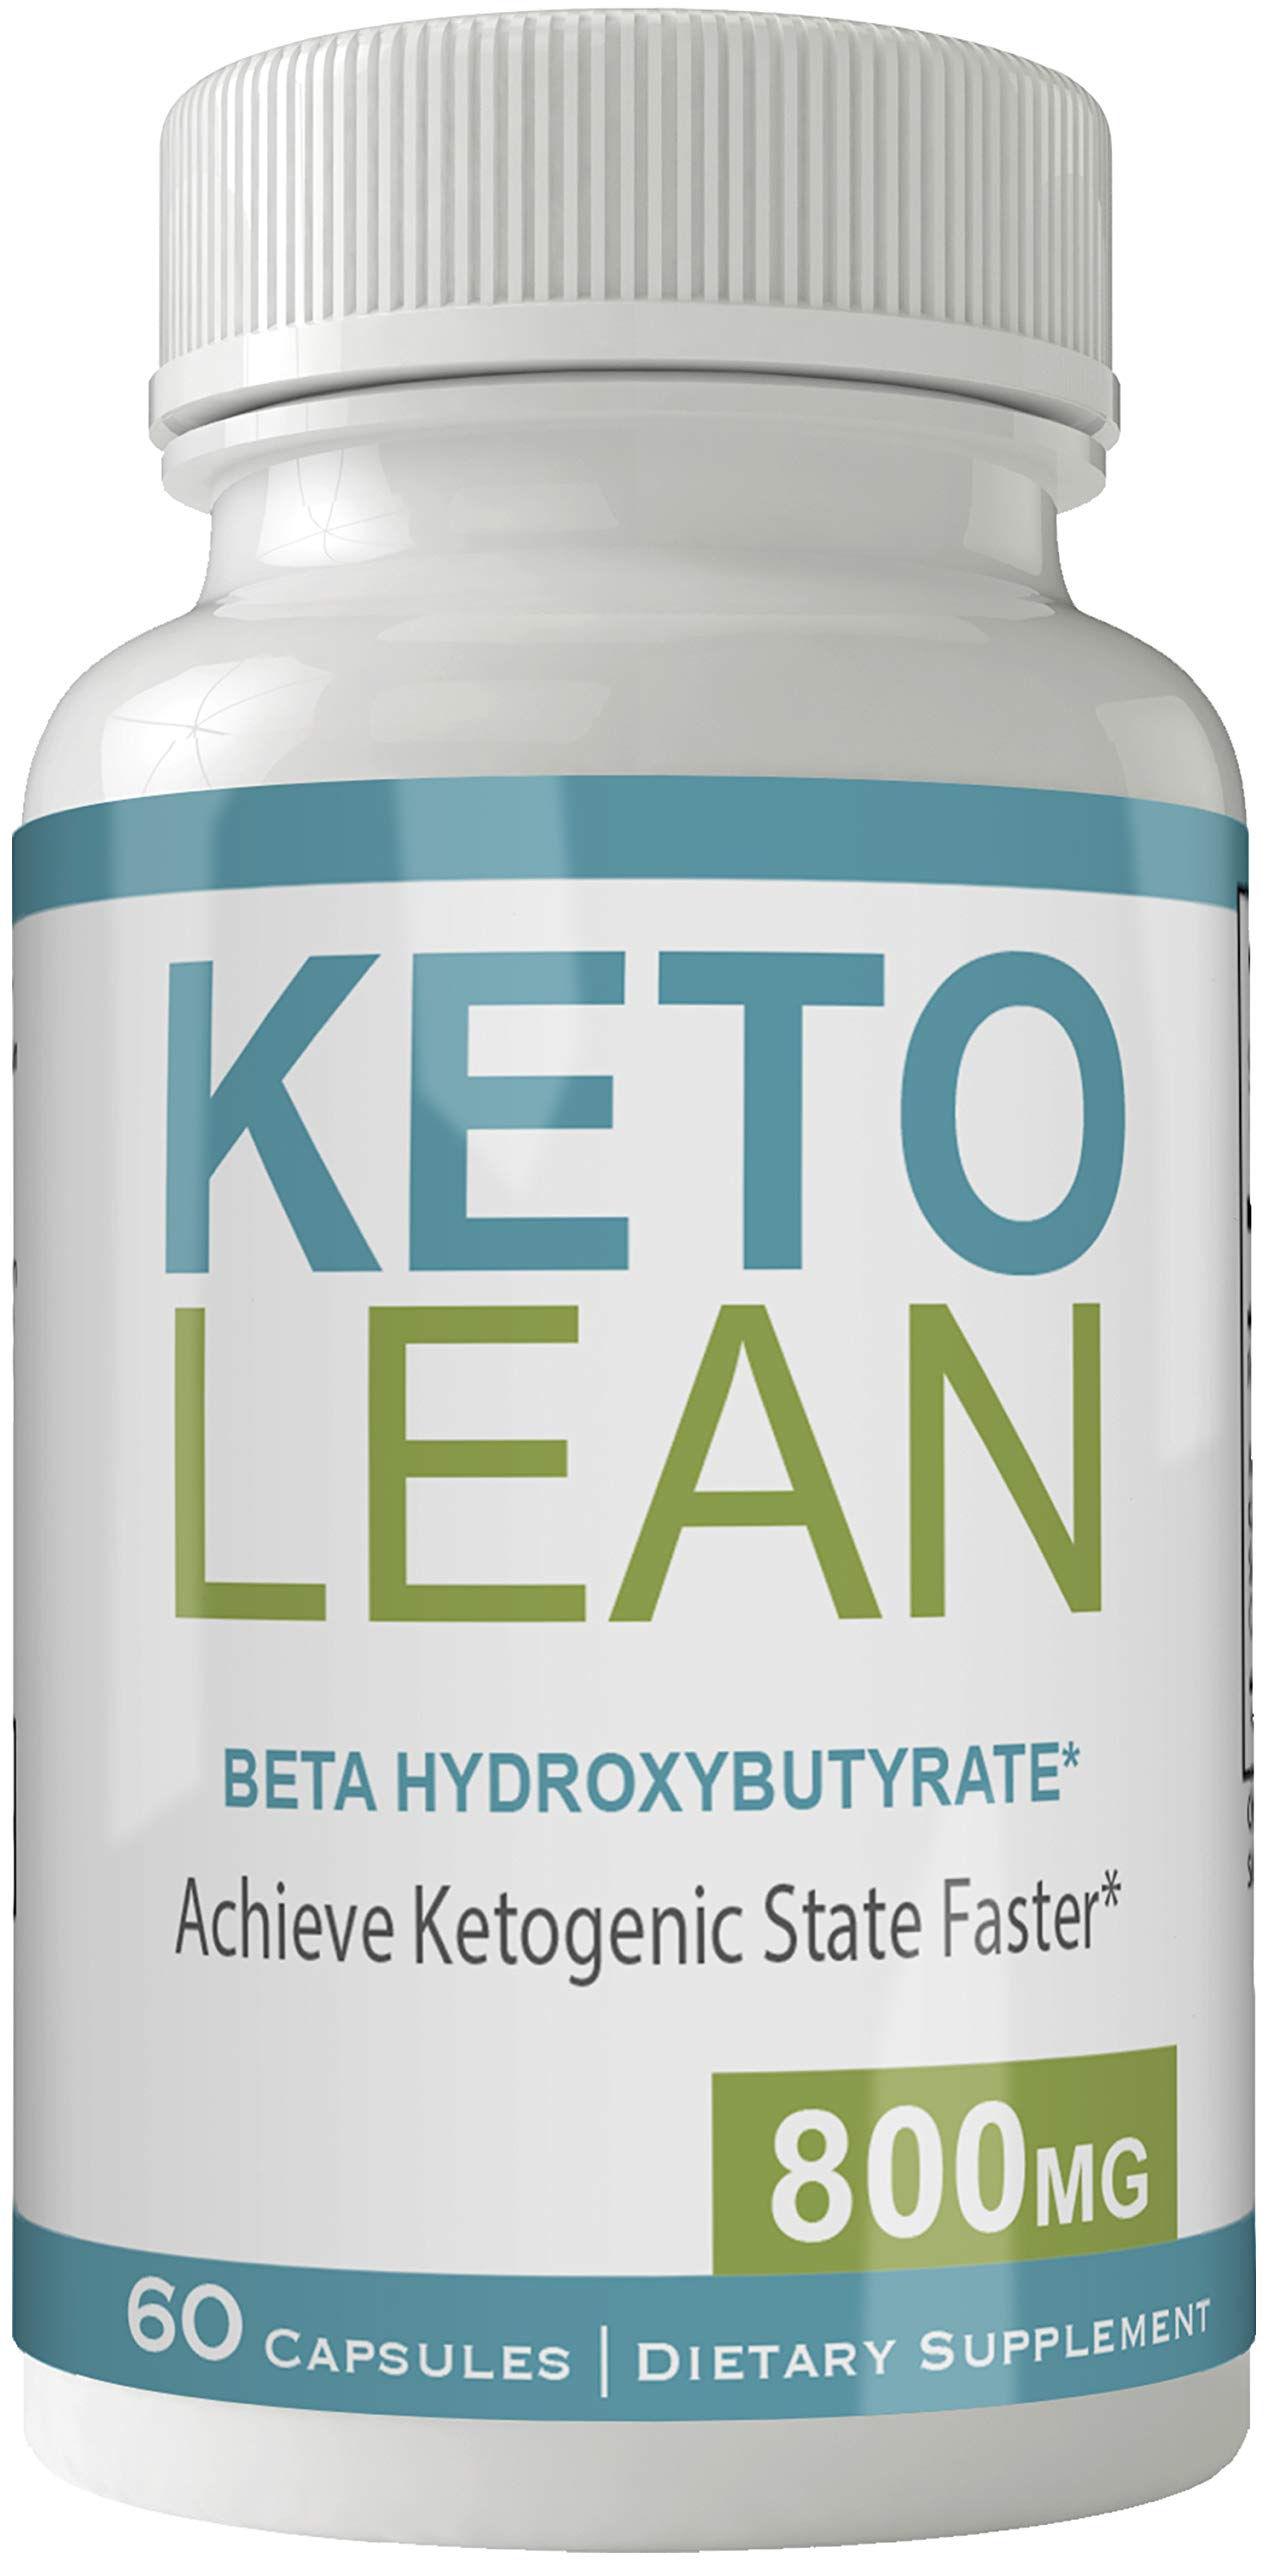 Keto Lean Pills Advance Weight Loss Supplement Appetite Suppressant Natural Ketogenic 800 mg Formula with BHB Salts Ketone Diet Capsules to Boost Metabolism, Energy and Focus by nutra4health LLC